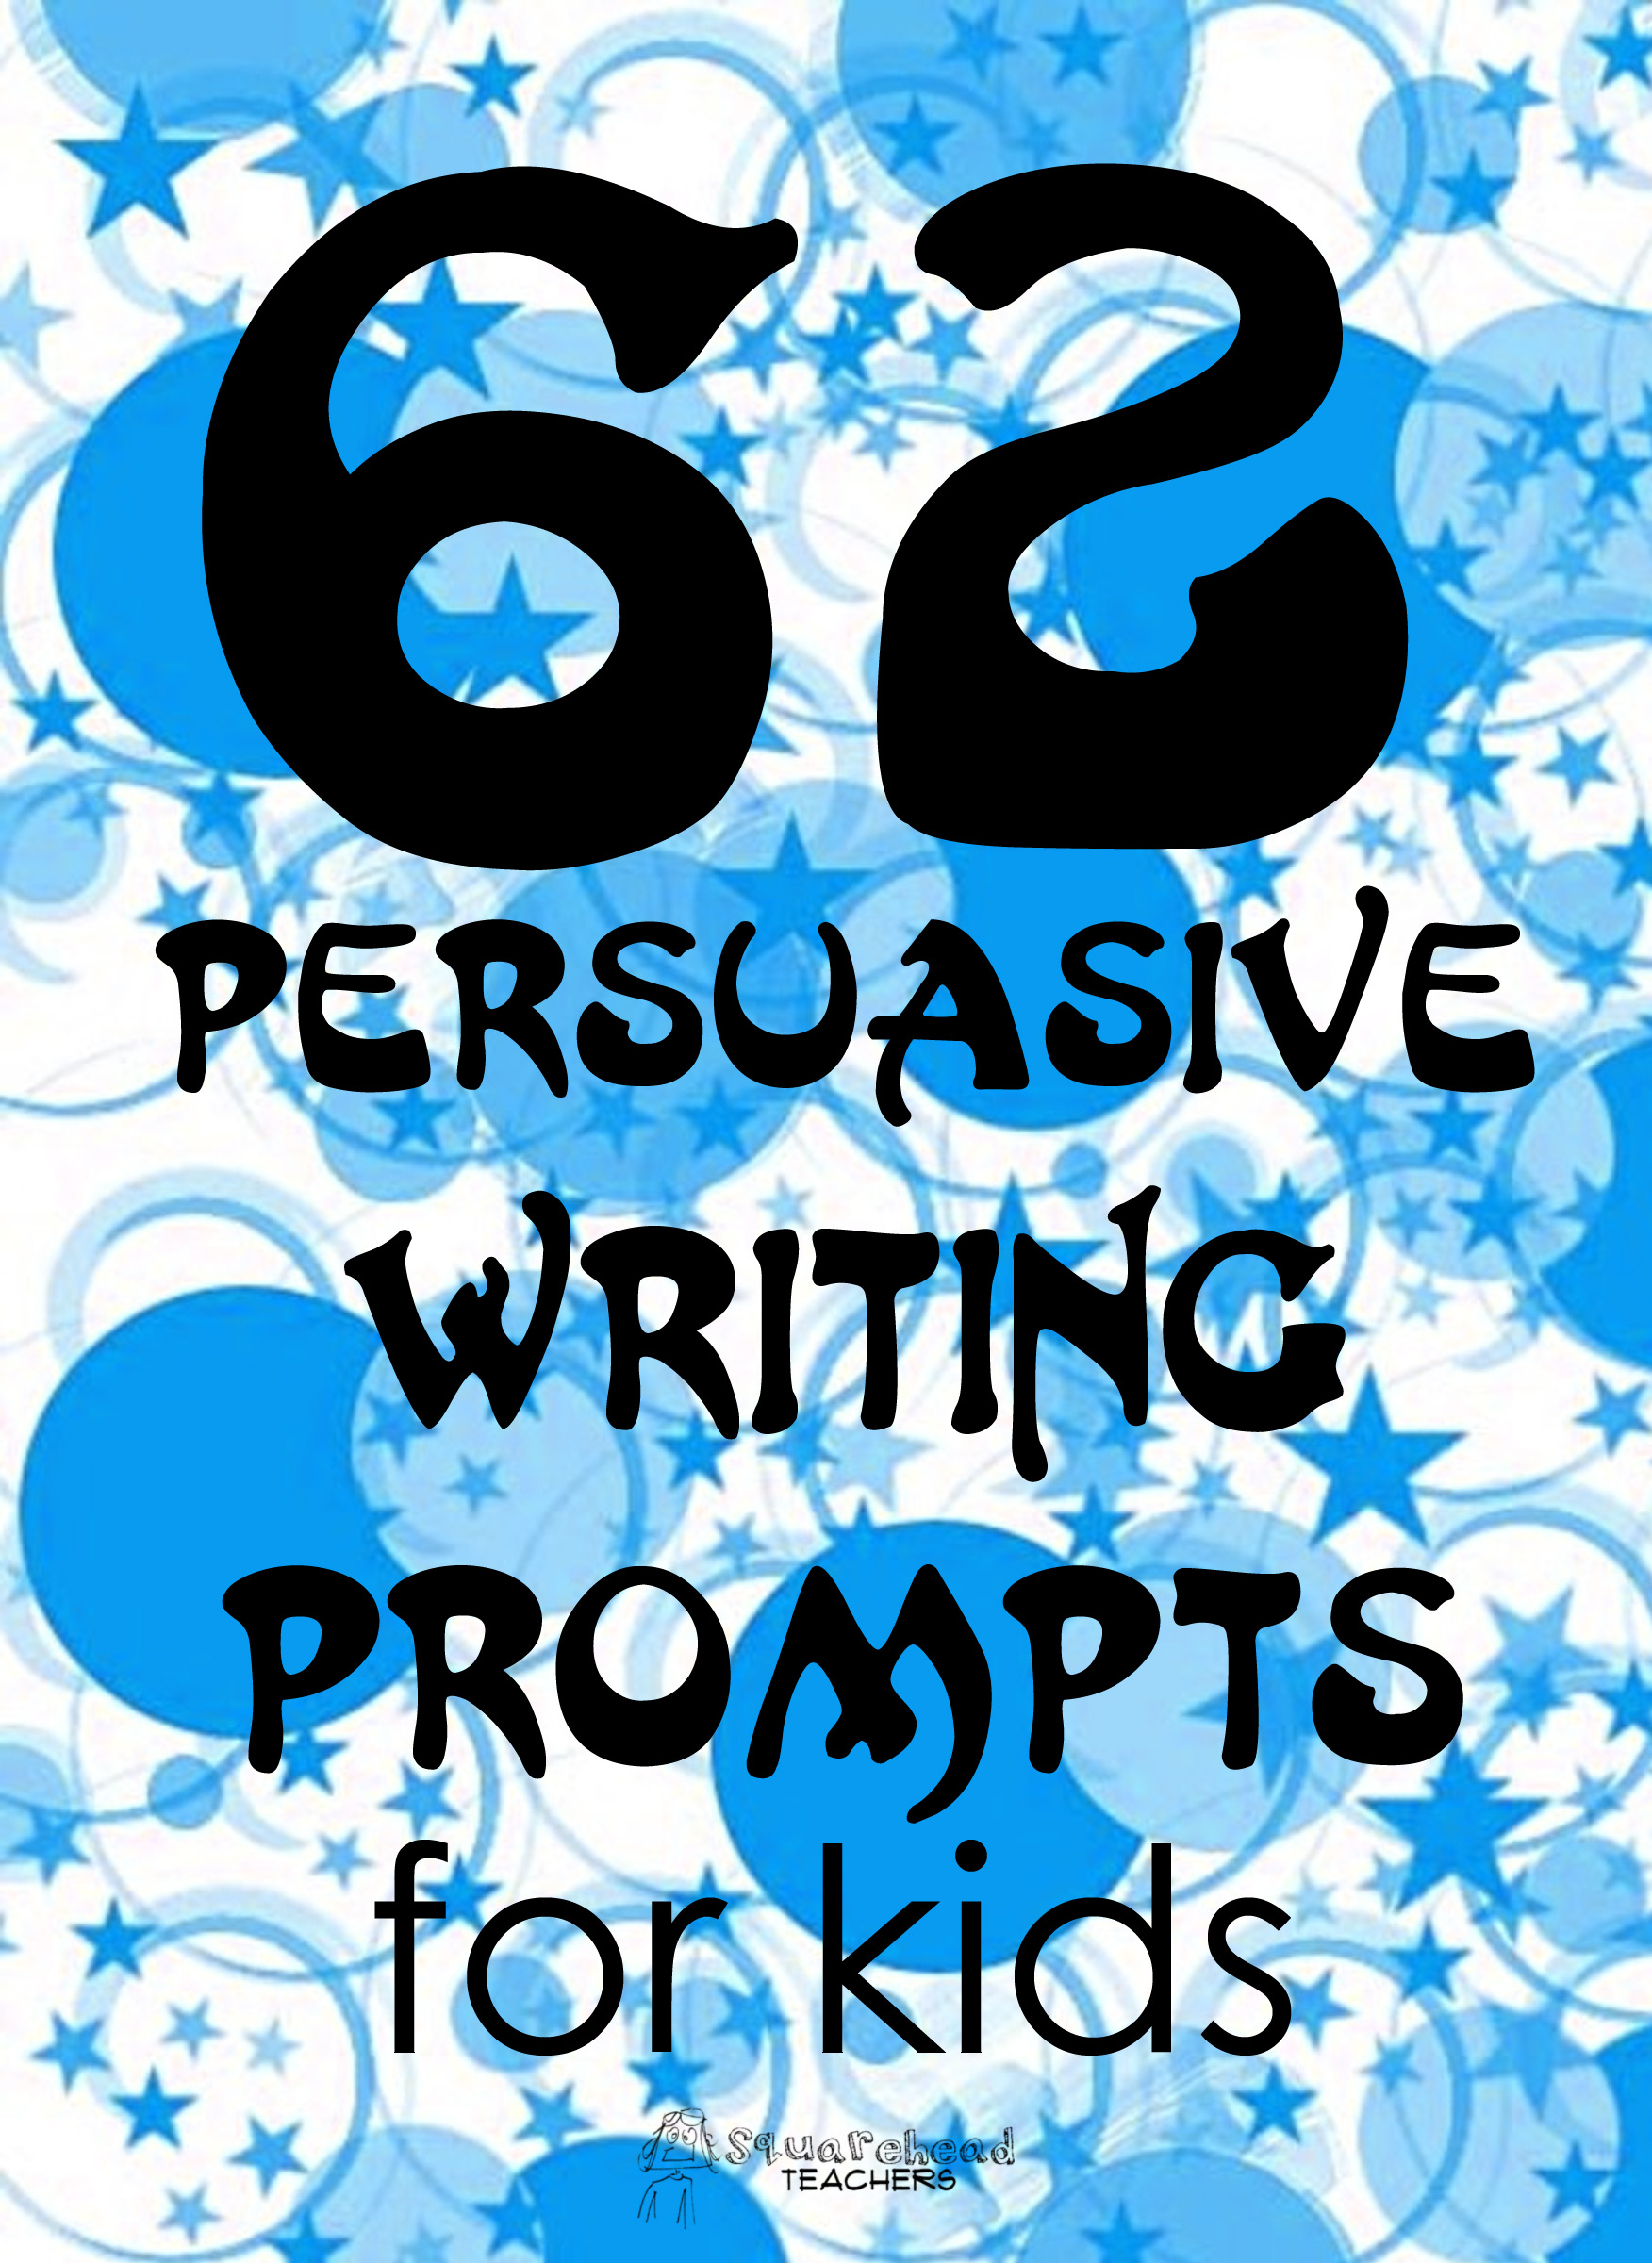 Writing prompt pictures for kids